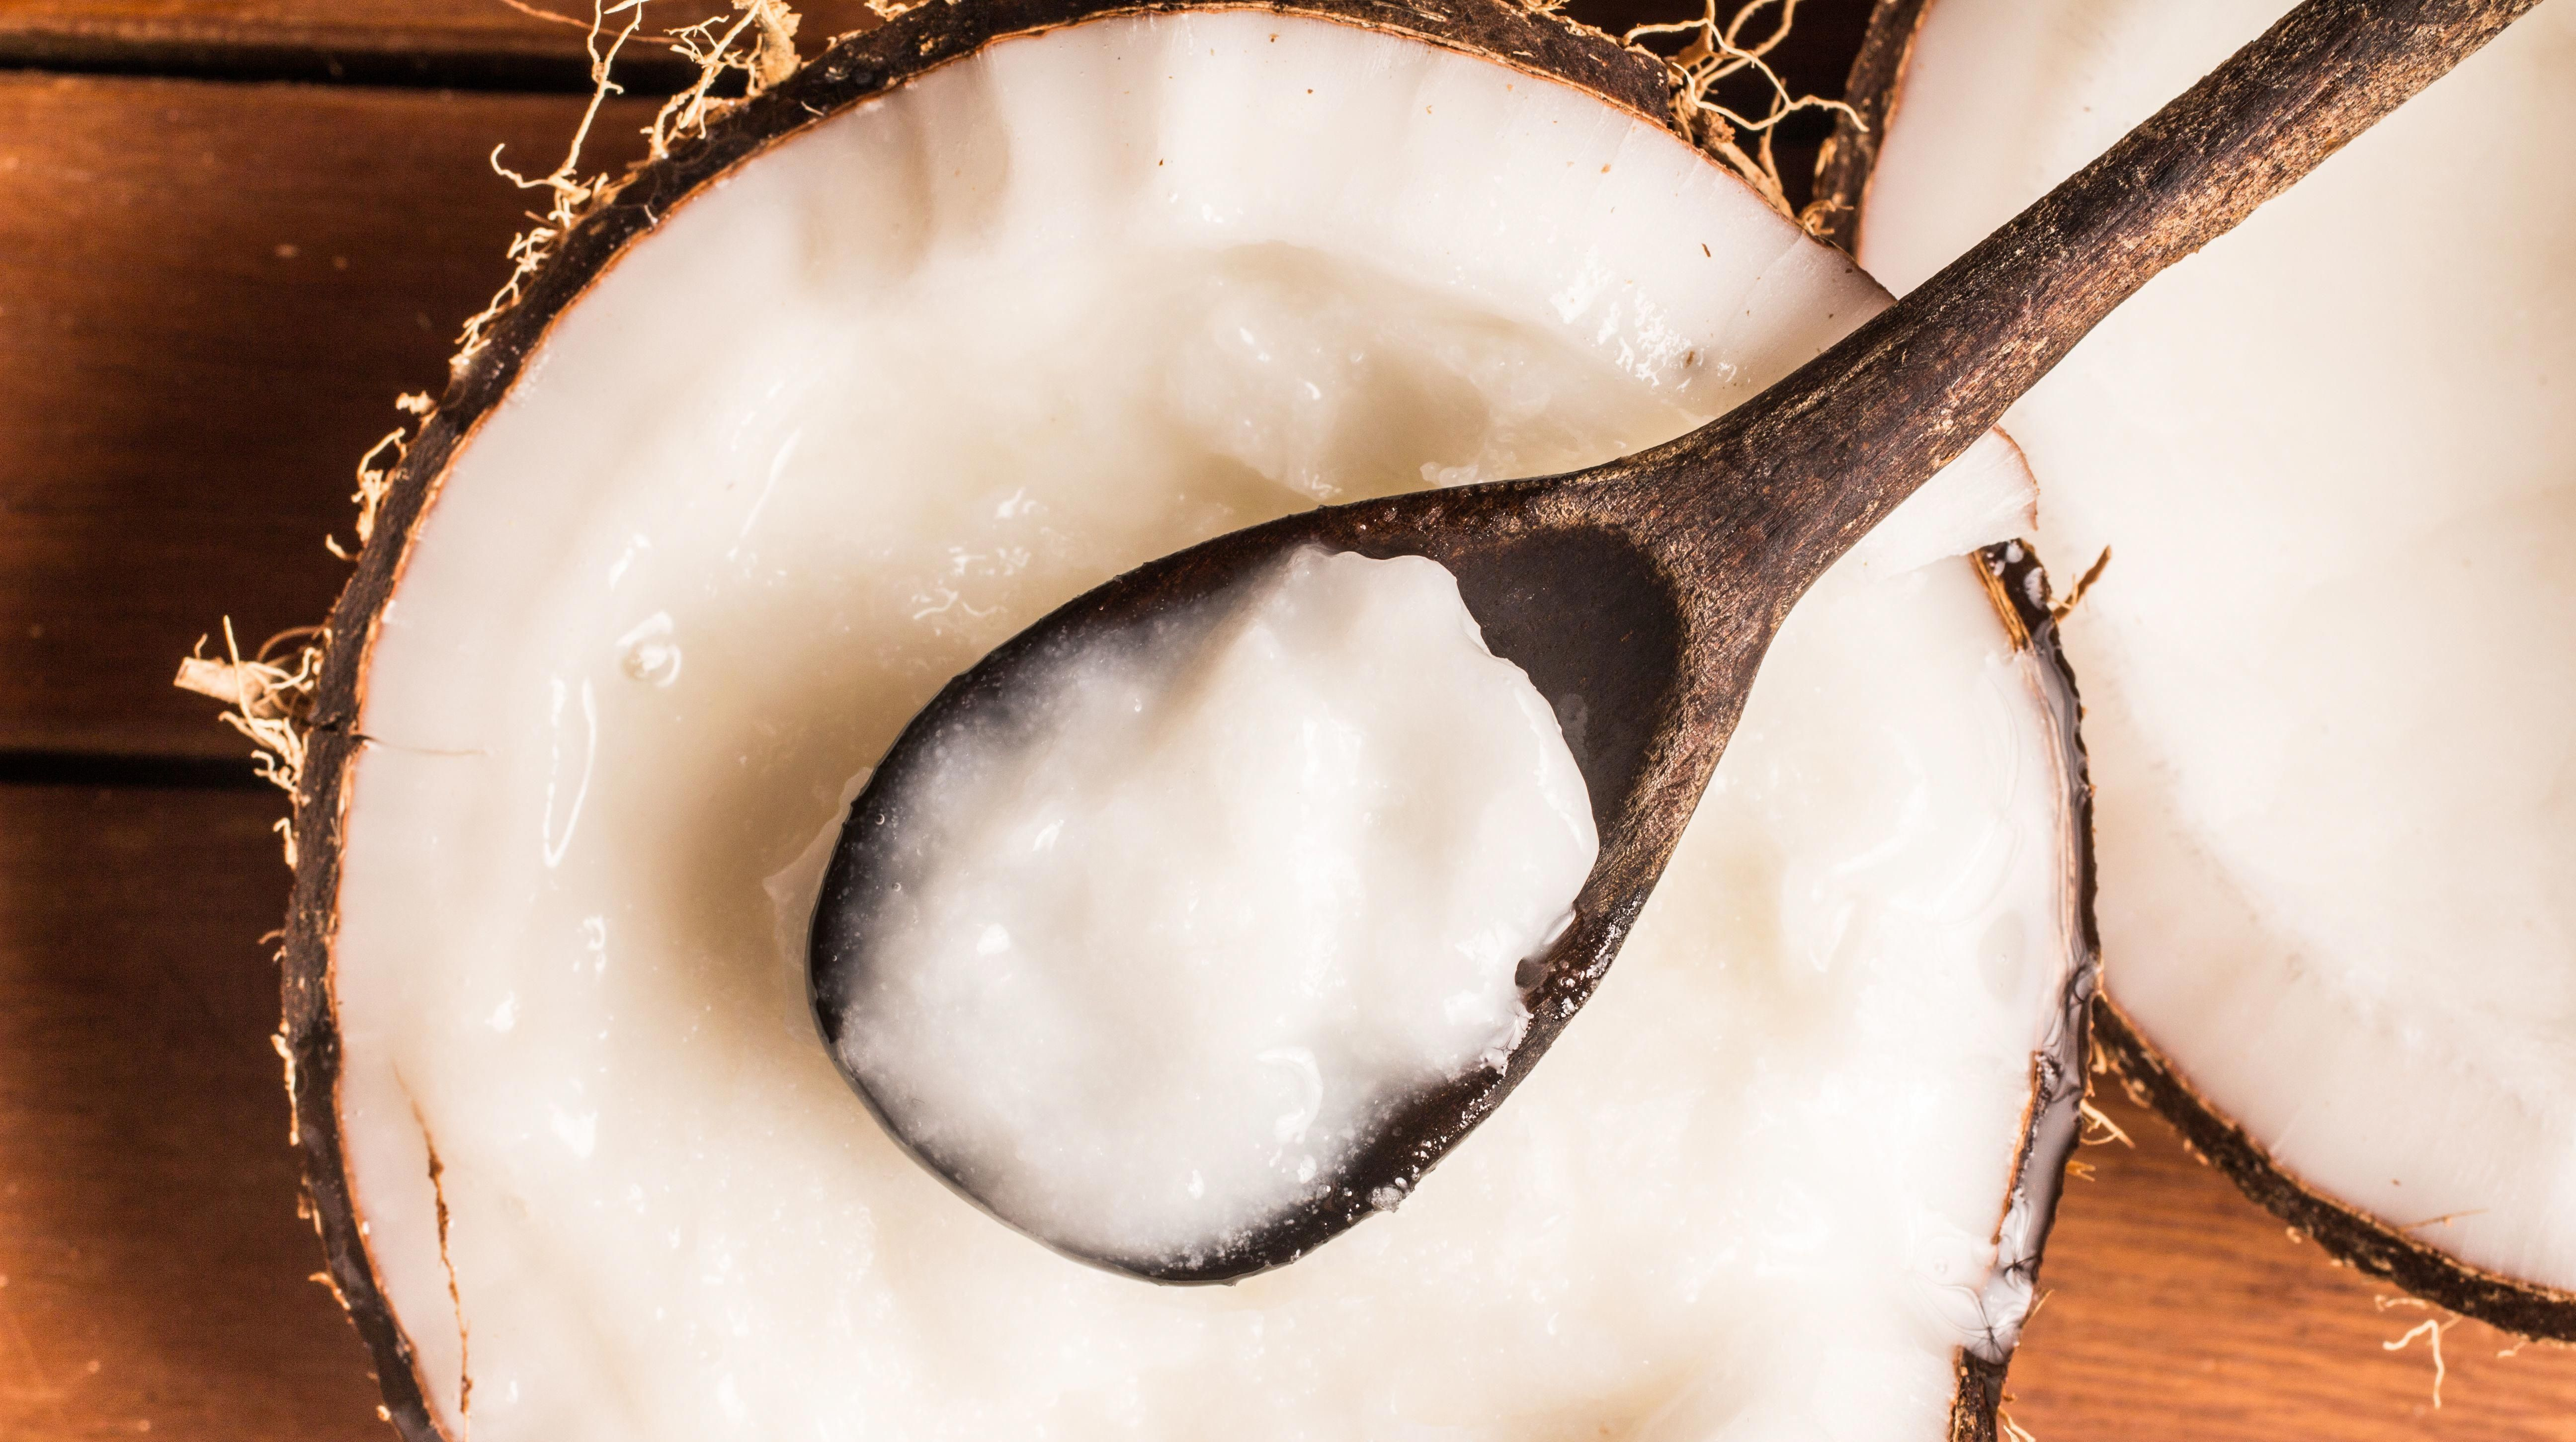 The study found that fatty acids derived from coconut oil